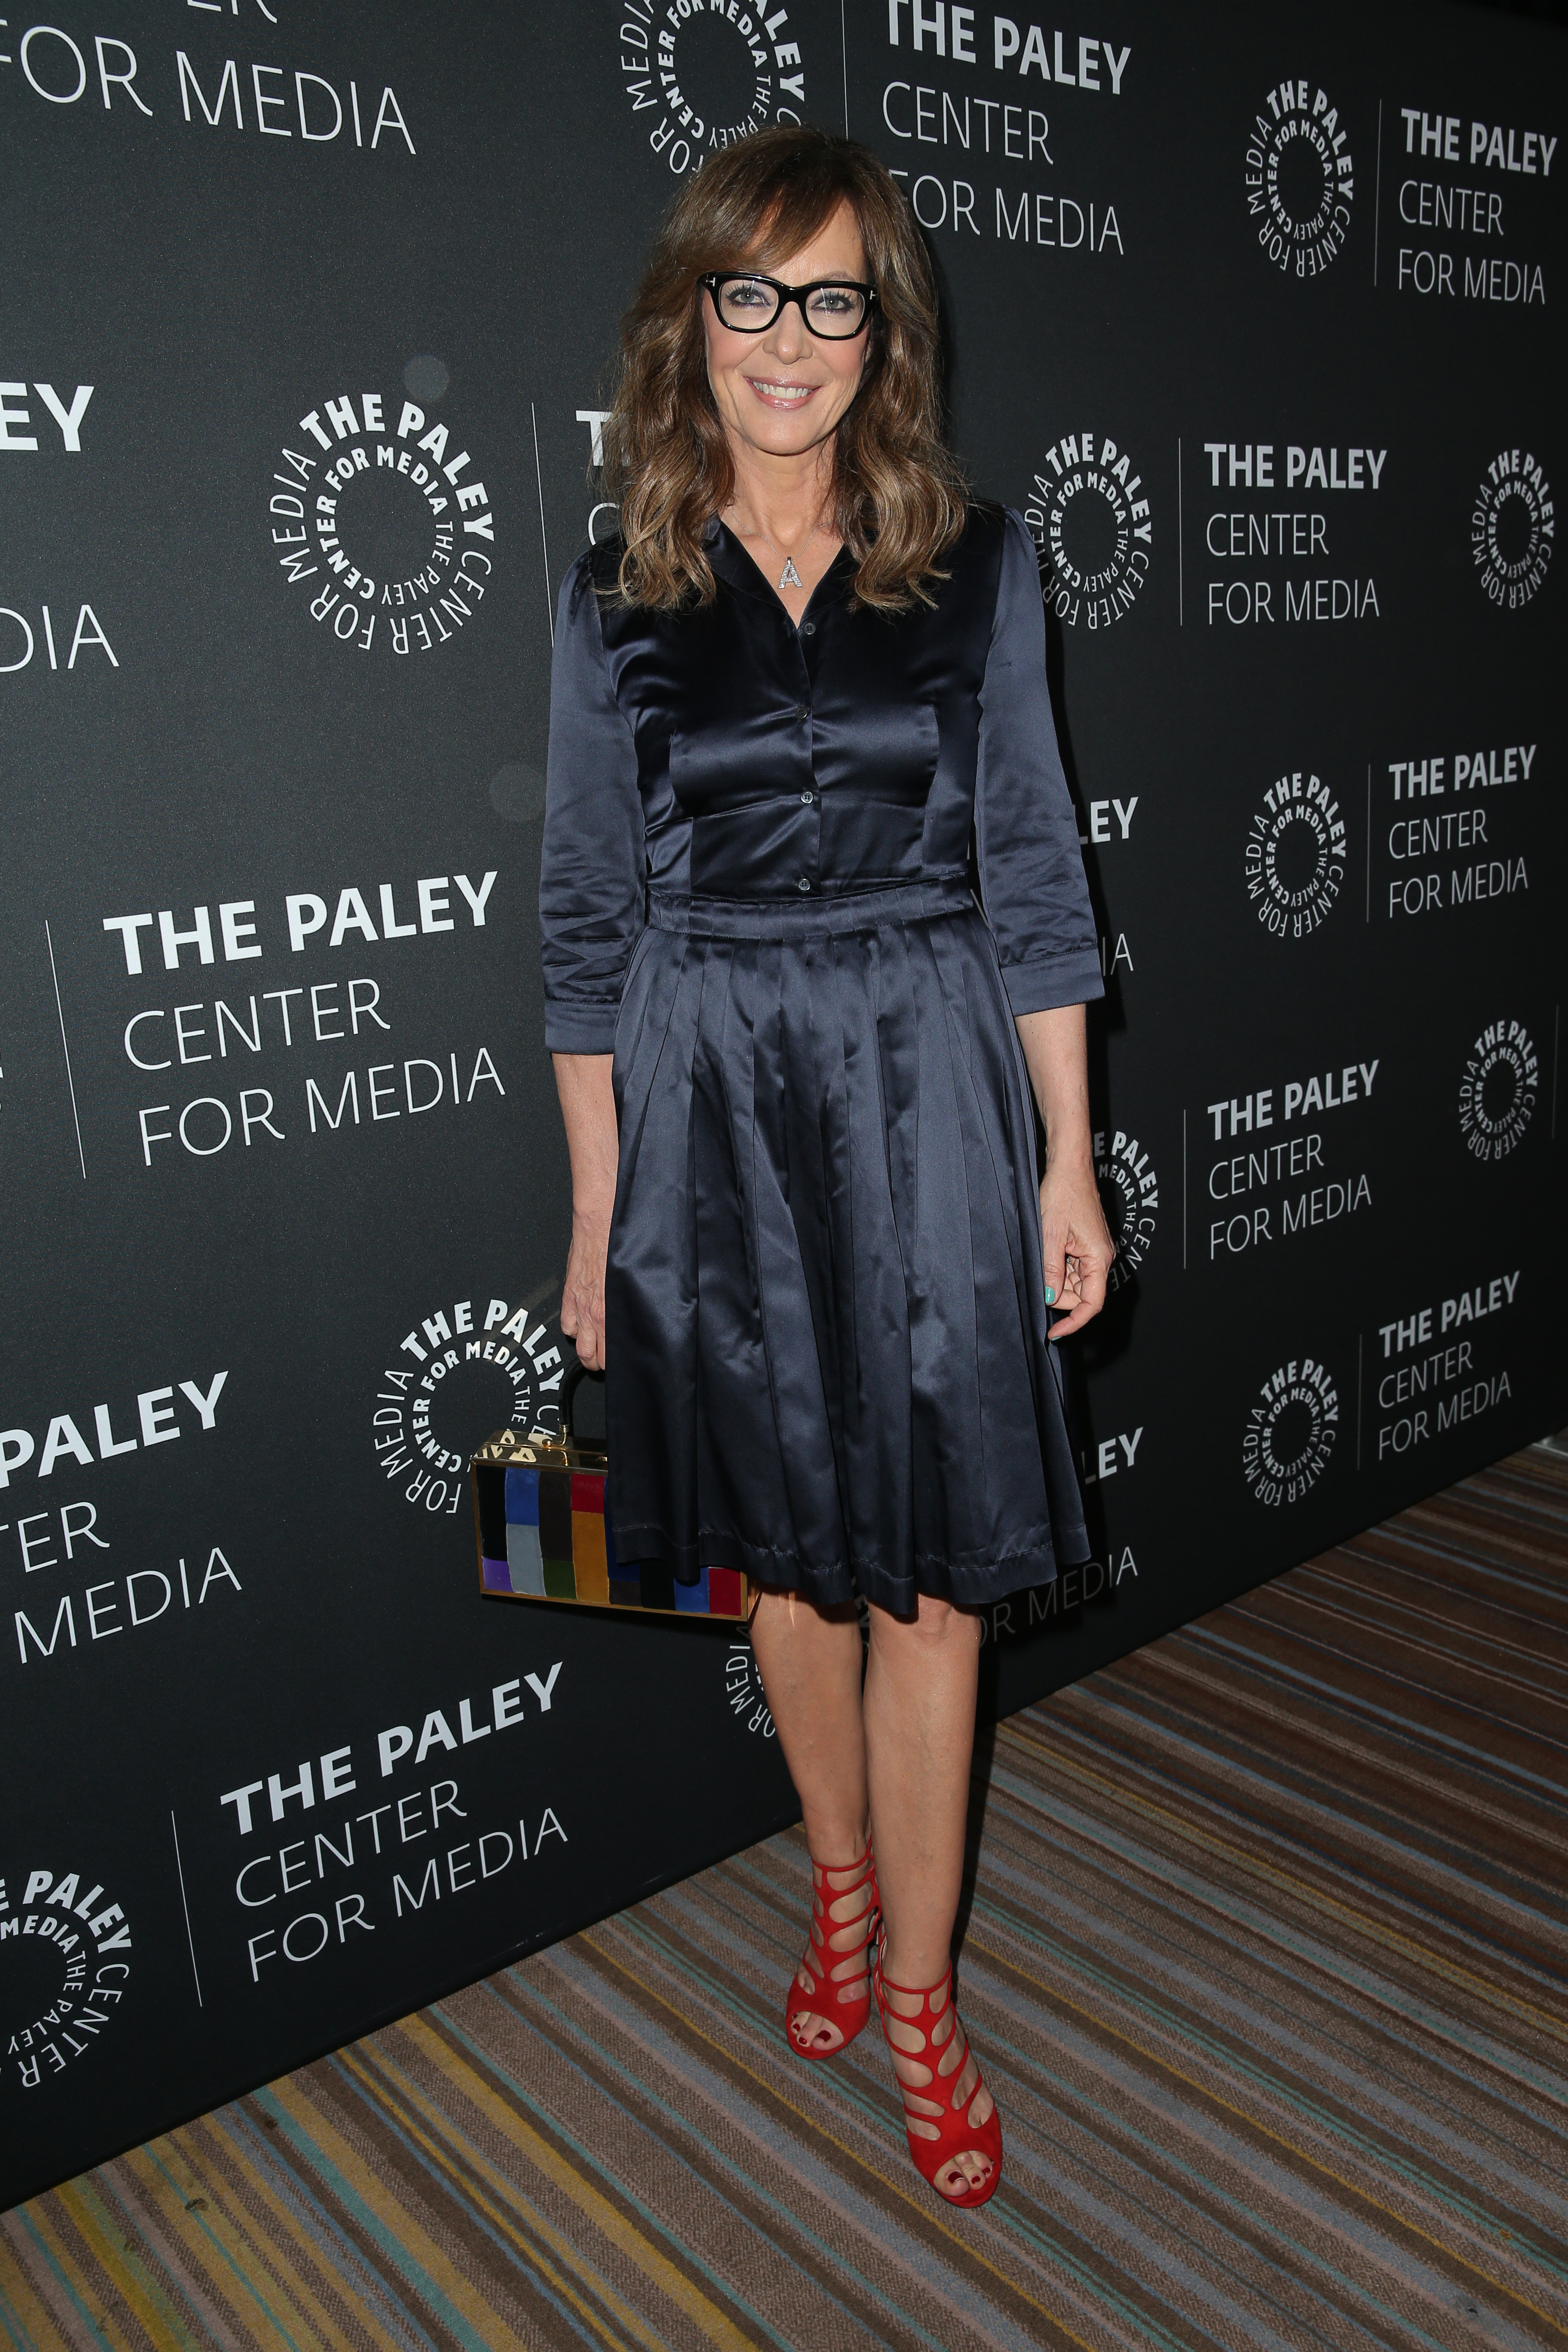 Allison Janney attends The Paley Honors: Celebrating Women in Television presented by The Paley Center for Media at the Beverly Wilshire Hotel in Beverly Hills on Oct. 12, 2017.